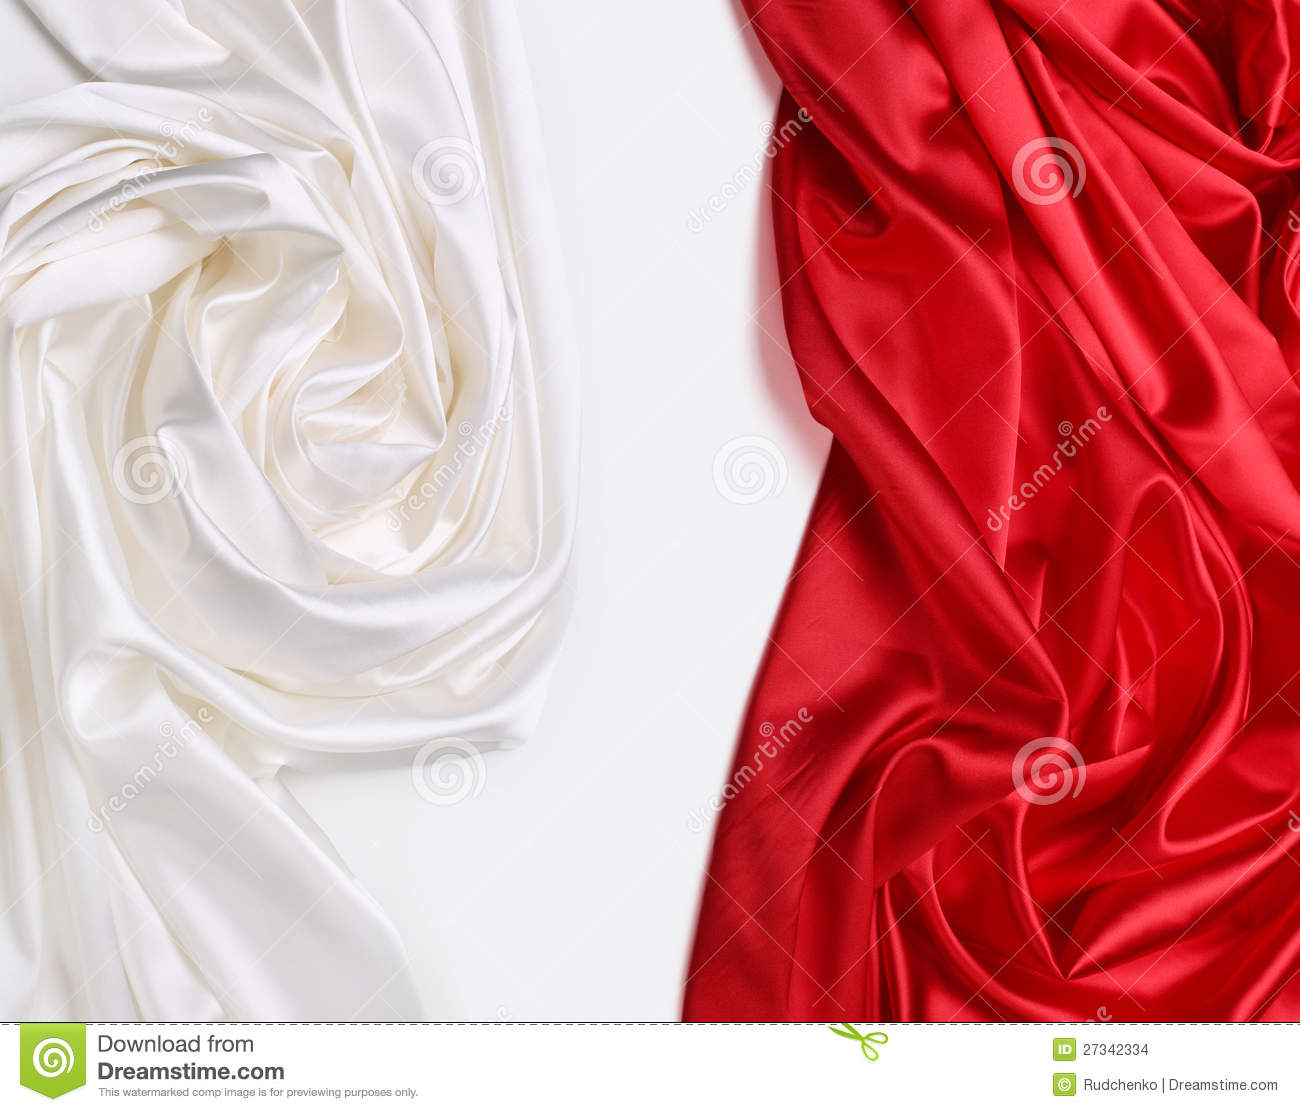 Red And White Silk Fabric Stock Images - Image: 27342334